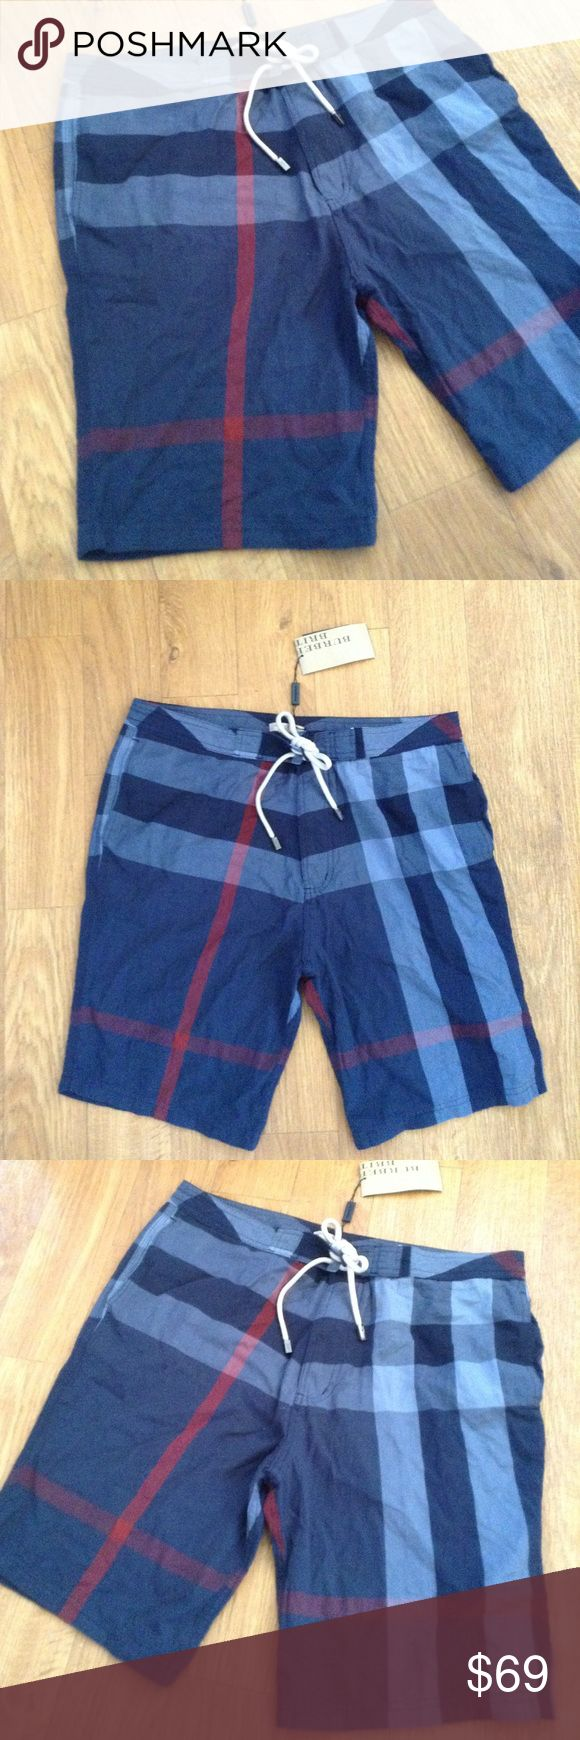 Burberry Men Shorts Swimming Board Short Surfer L Authentic!!! Brand new!!! Wow!!! Size XL. Back pocket.   Bundle up with my other items to get an extra discount and save on combined shipping!!     Burberry Shorts Athletic